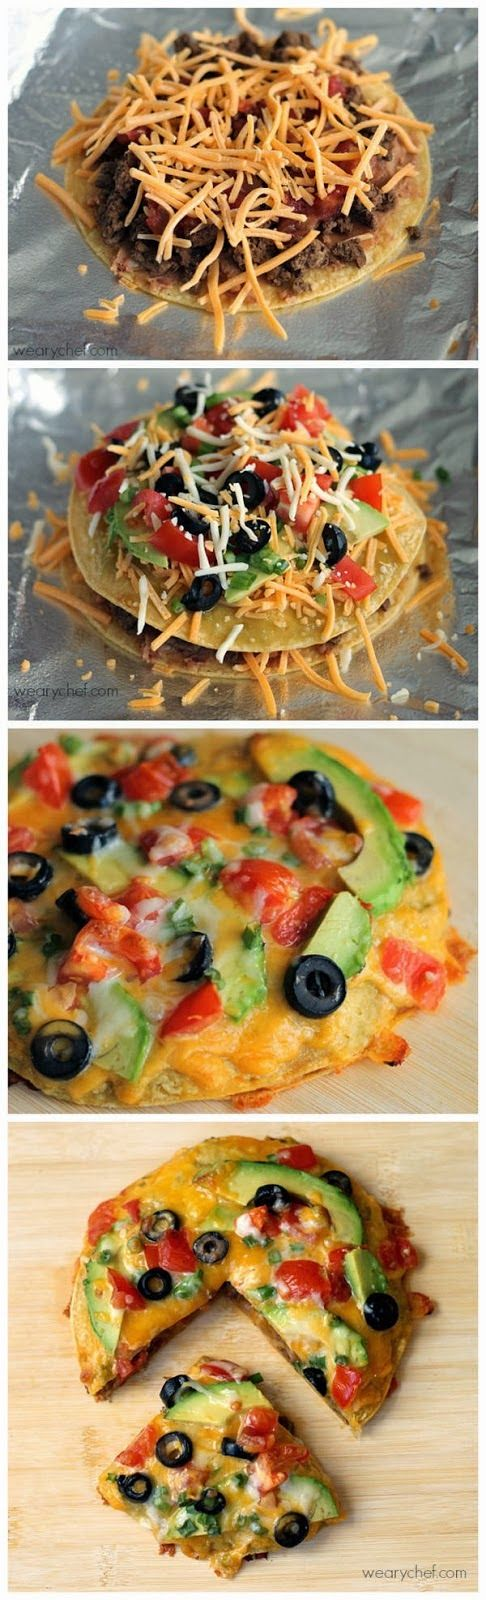 Loaded Mexican Pizza, some ingredients will be given a miss (olives ) but otherwise yum